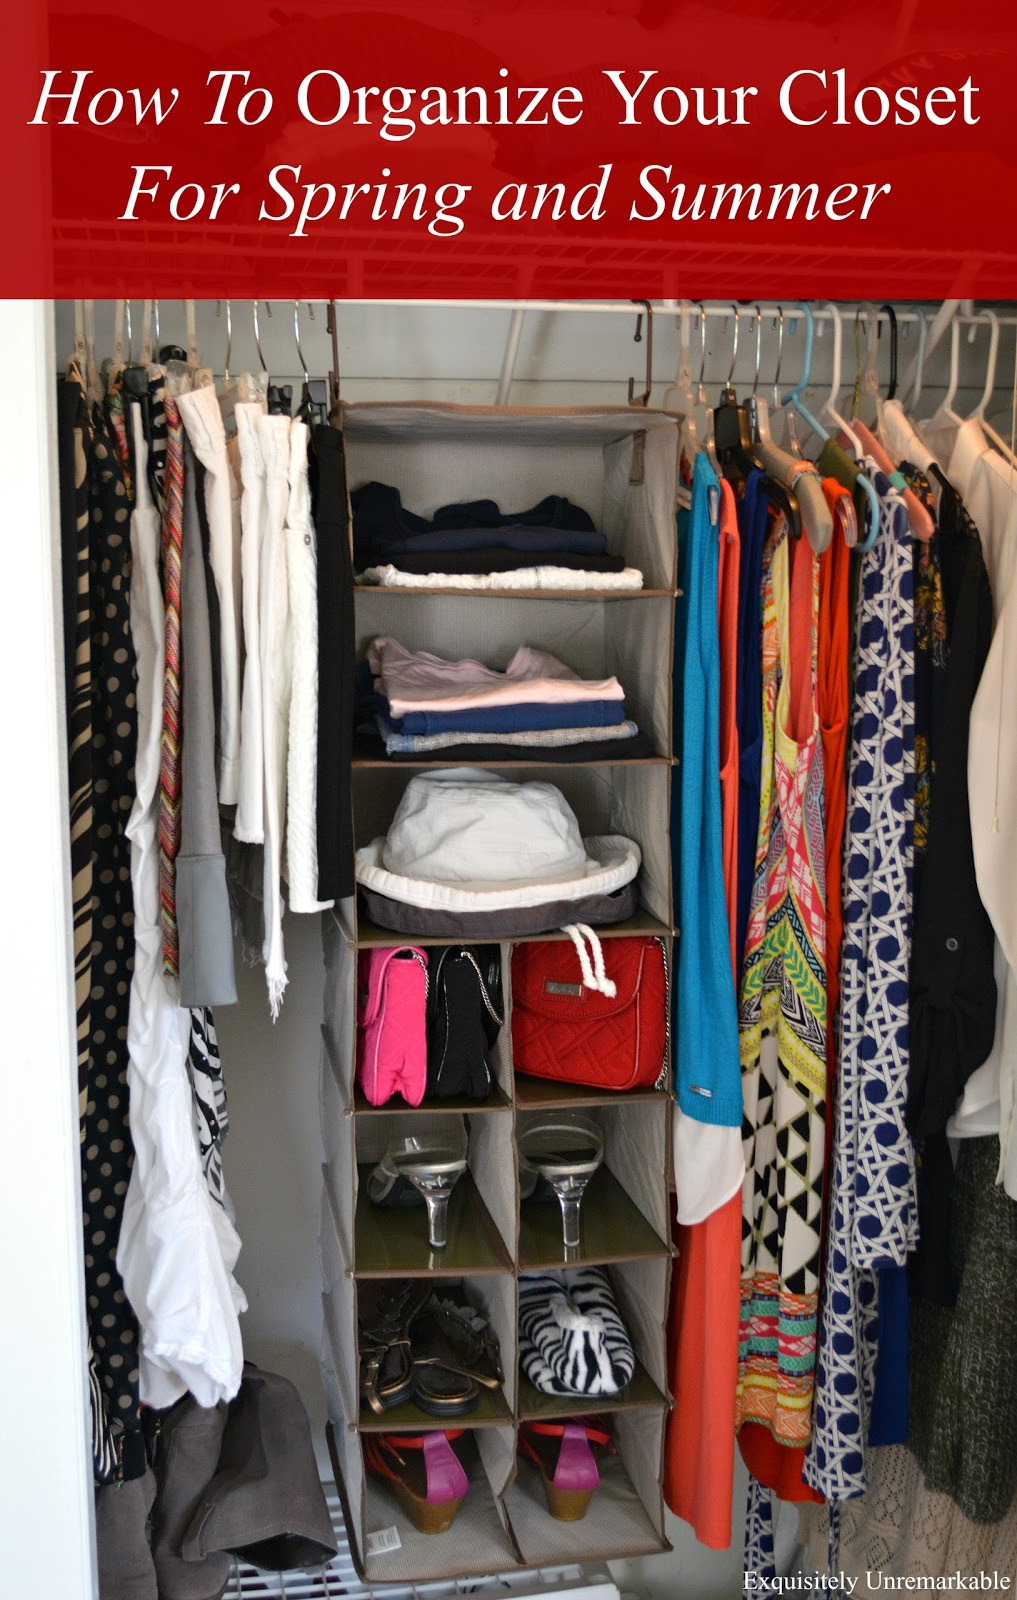 How To Organize Your Closet For Spring and Summer